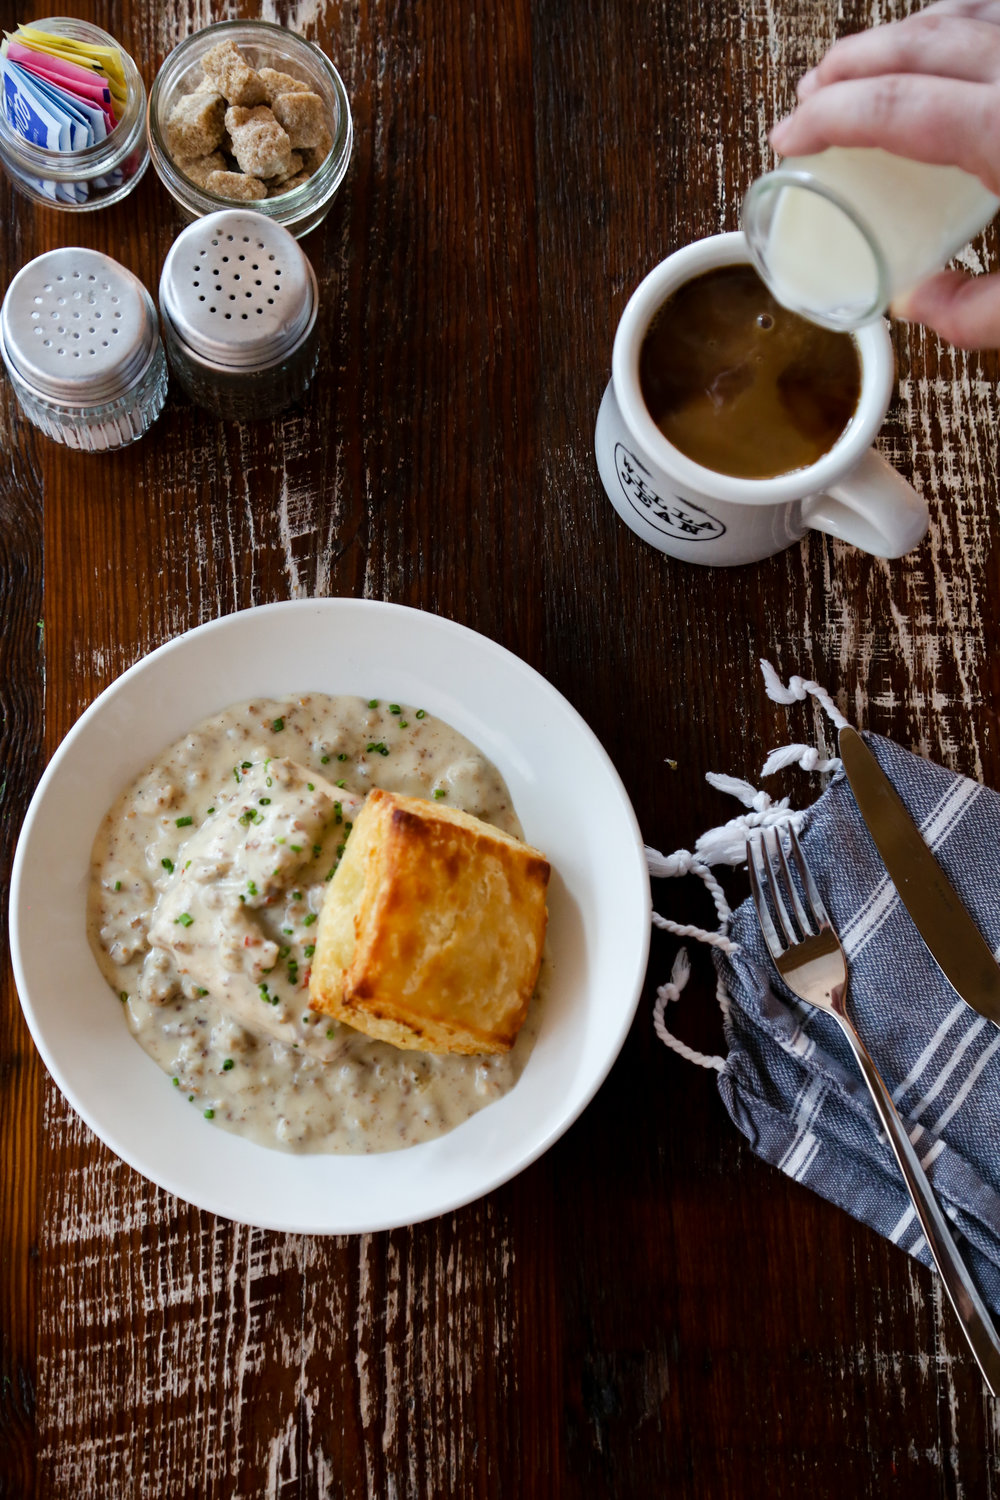 The Best Breakfast Chef of 2017  - If you build it, Bey will come—or at least that's what chef Kelly Fields hoped when she opened Willa Jean in New Orleans in 2015.Read more...